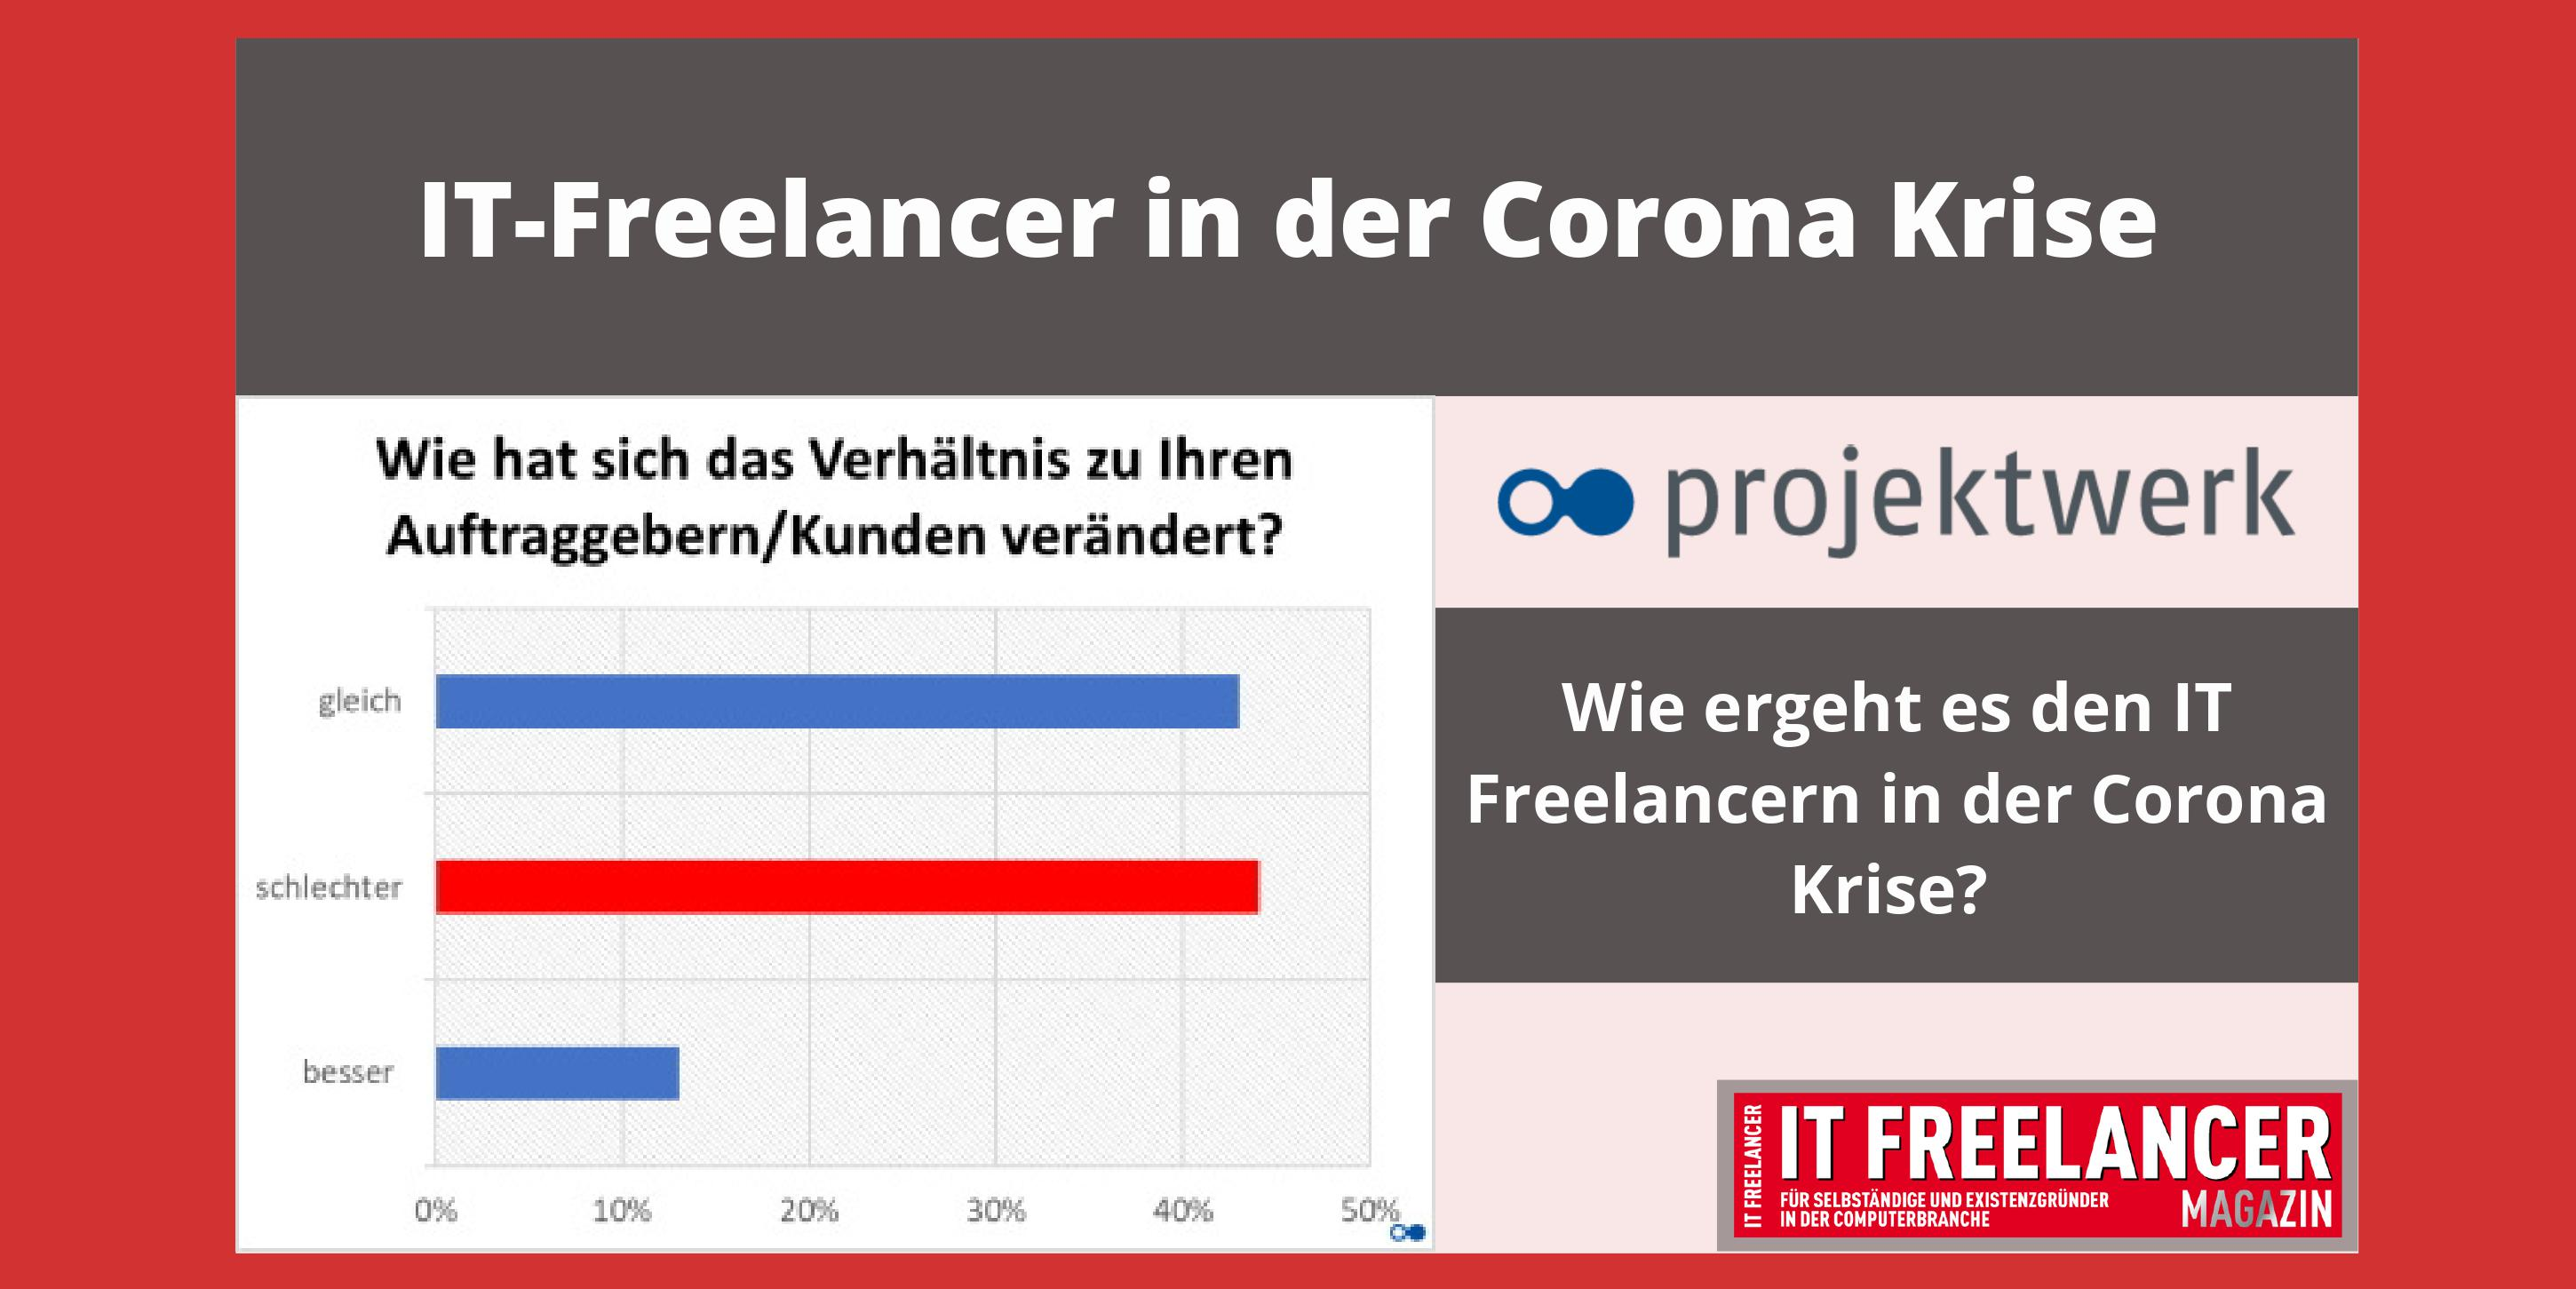 projektwerk Umfrage: IT Freelancer in der Corona Krise